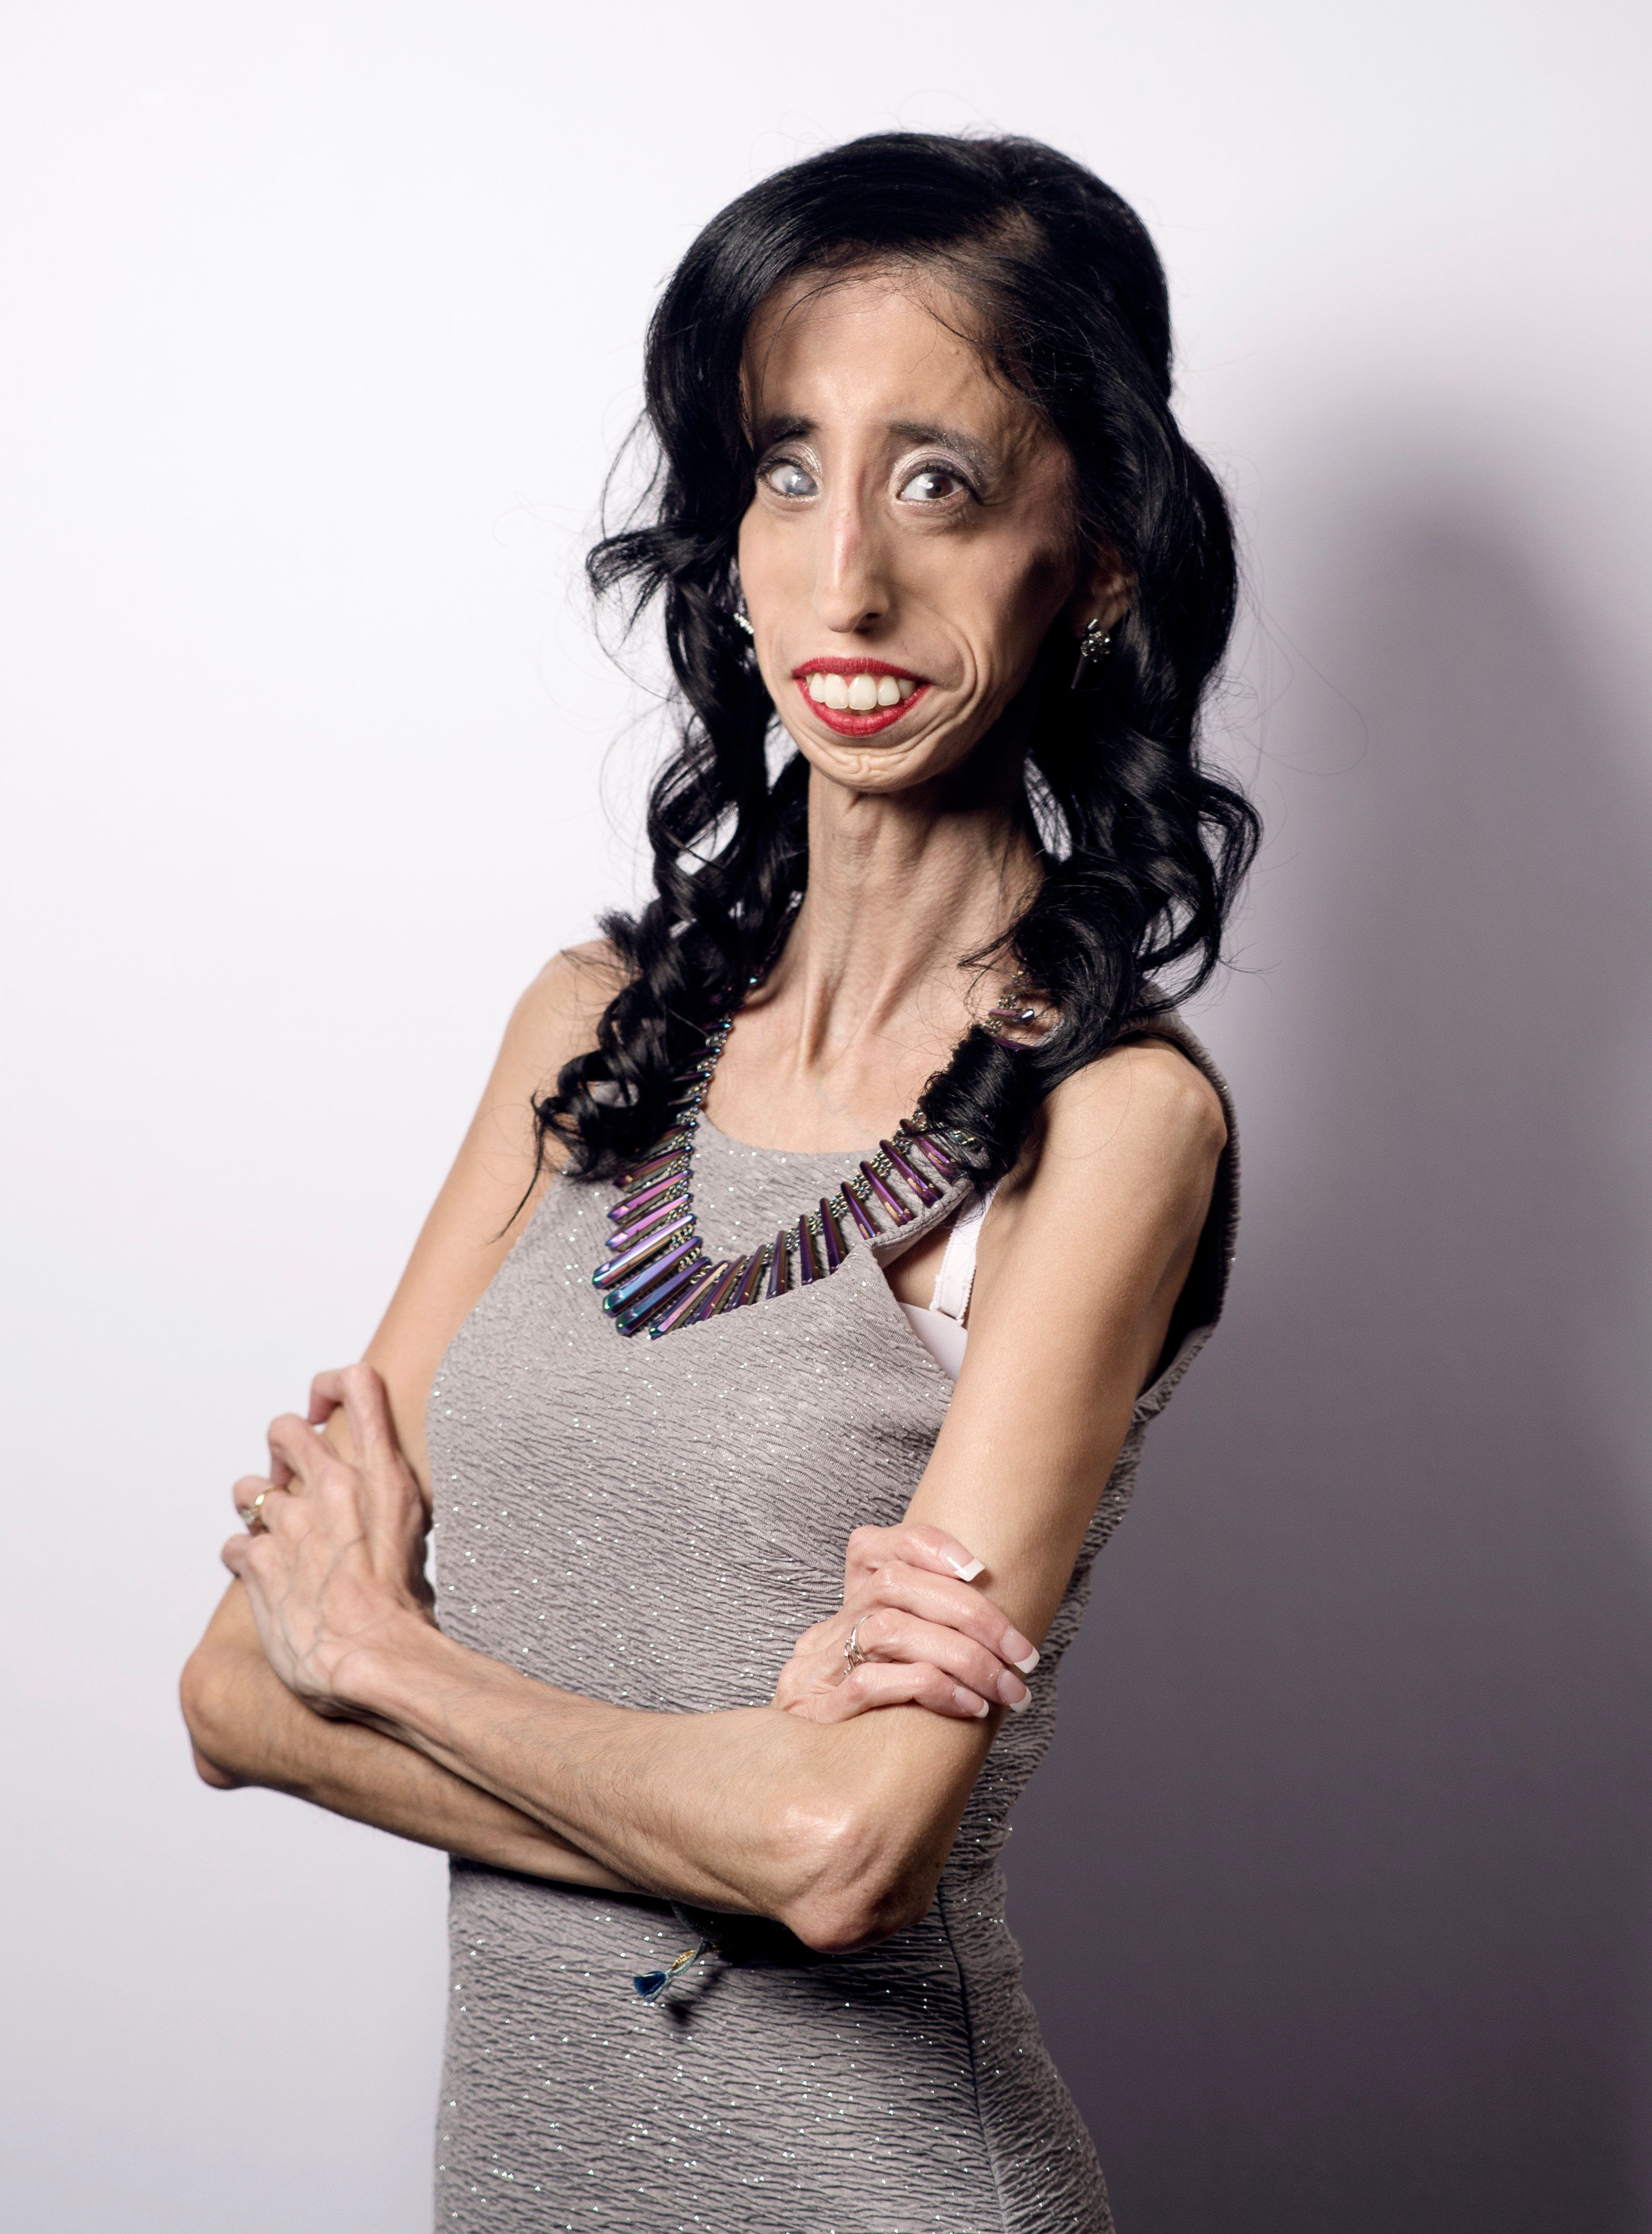 AUSTIN, TX - MARCH 14: Lizzie Velasquez poses for a portrait for the film 'A Brave Heart: The Lizzie Velasquez Story' during 2015 SXSW Music, Film + Interactive Festival at the Paramount Theatre on March 14, 2015 in Austin, Texas. (Photo by Michael Buckner/Getty Images)